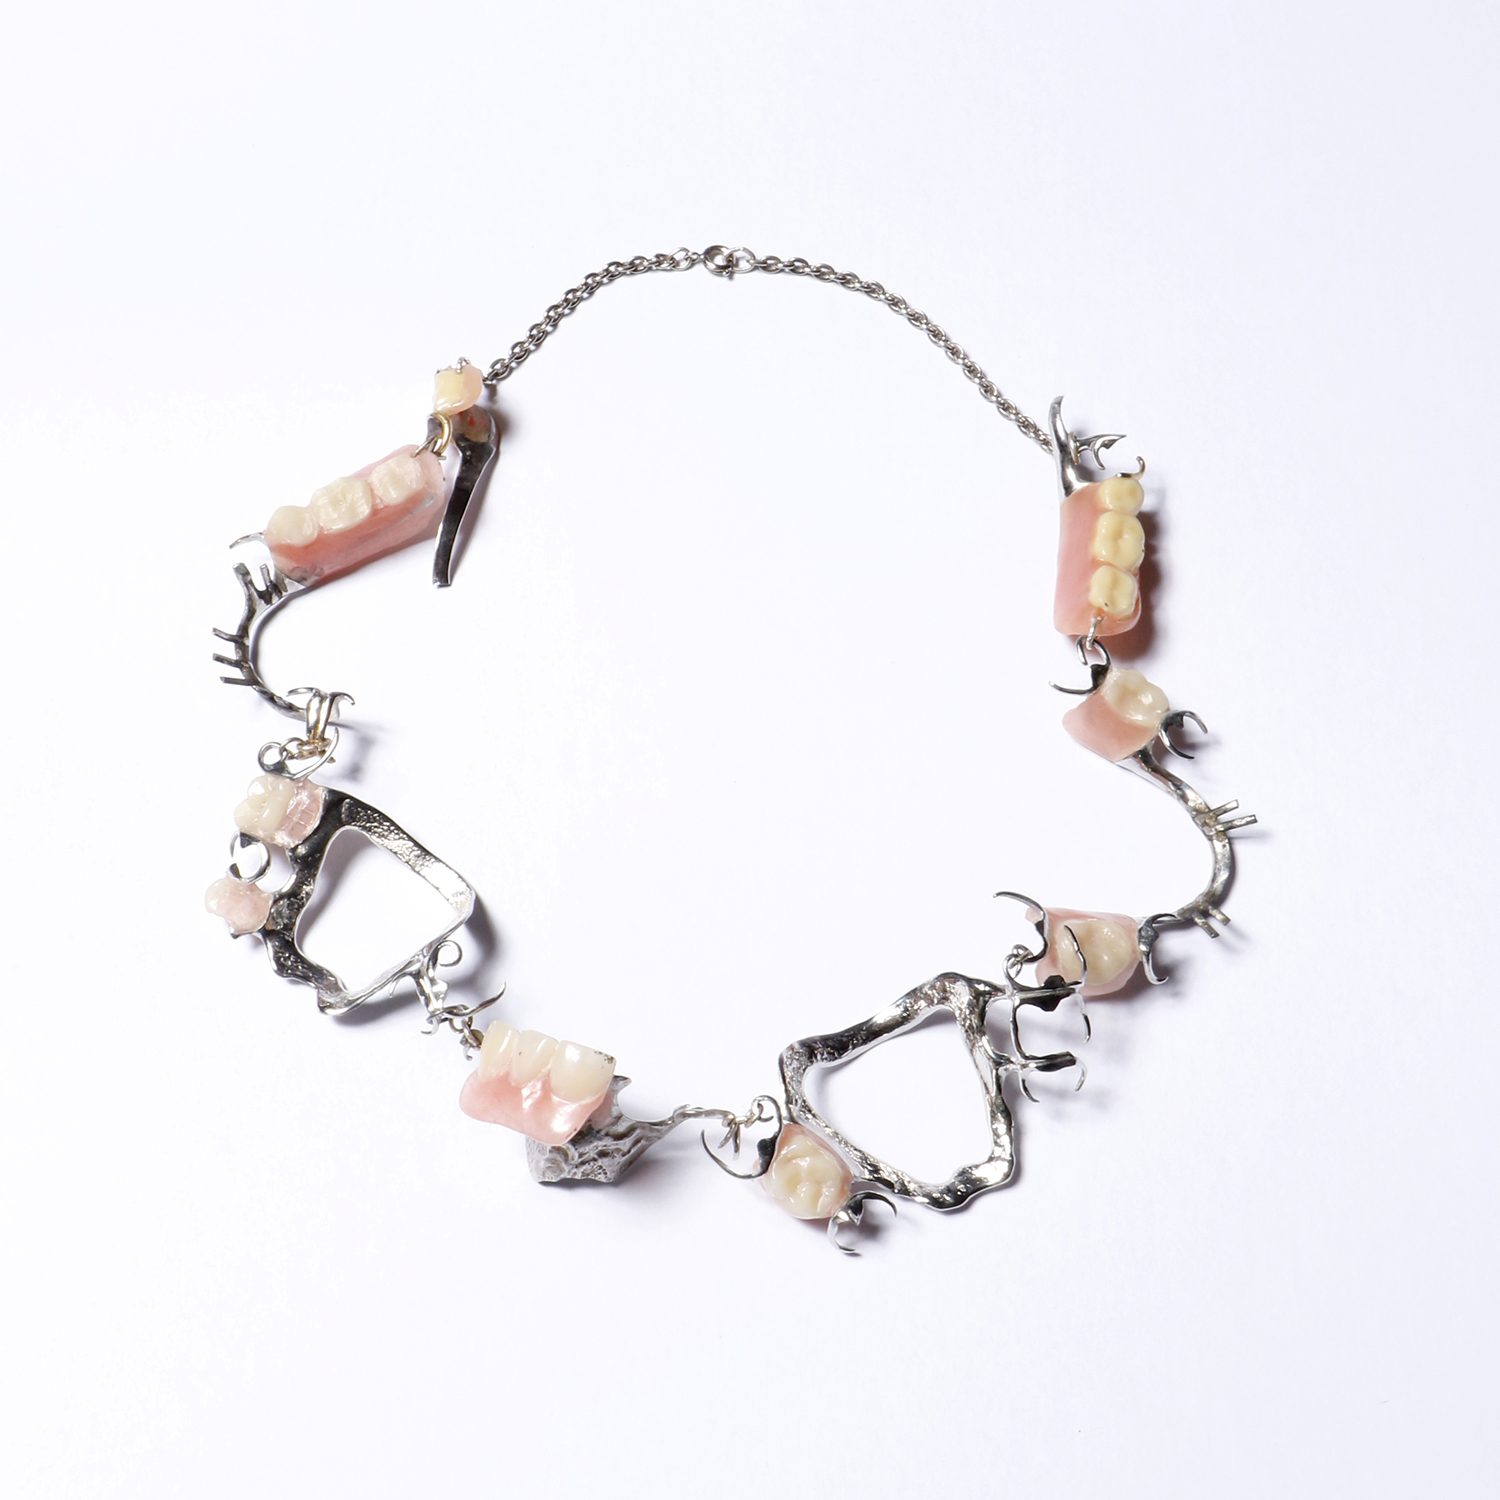 Prosthesis necklace 2020<div style='clear:both;width:100%;height:0px;'></div><span class='desc'>Size: 1 x 6 x 6 inch <br>Material: Prosthesis <br>Photo: Cissie van der Ven</span>